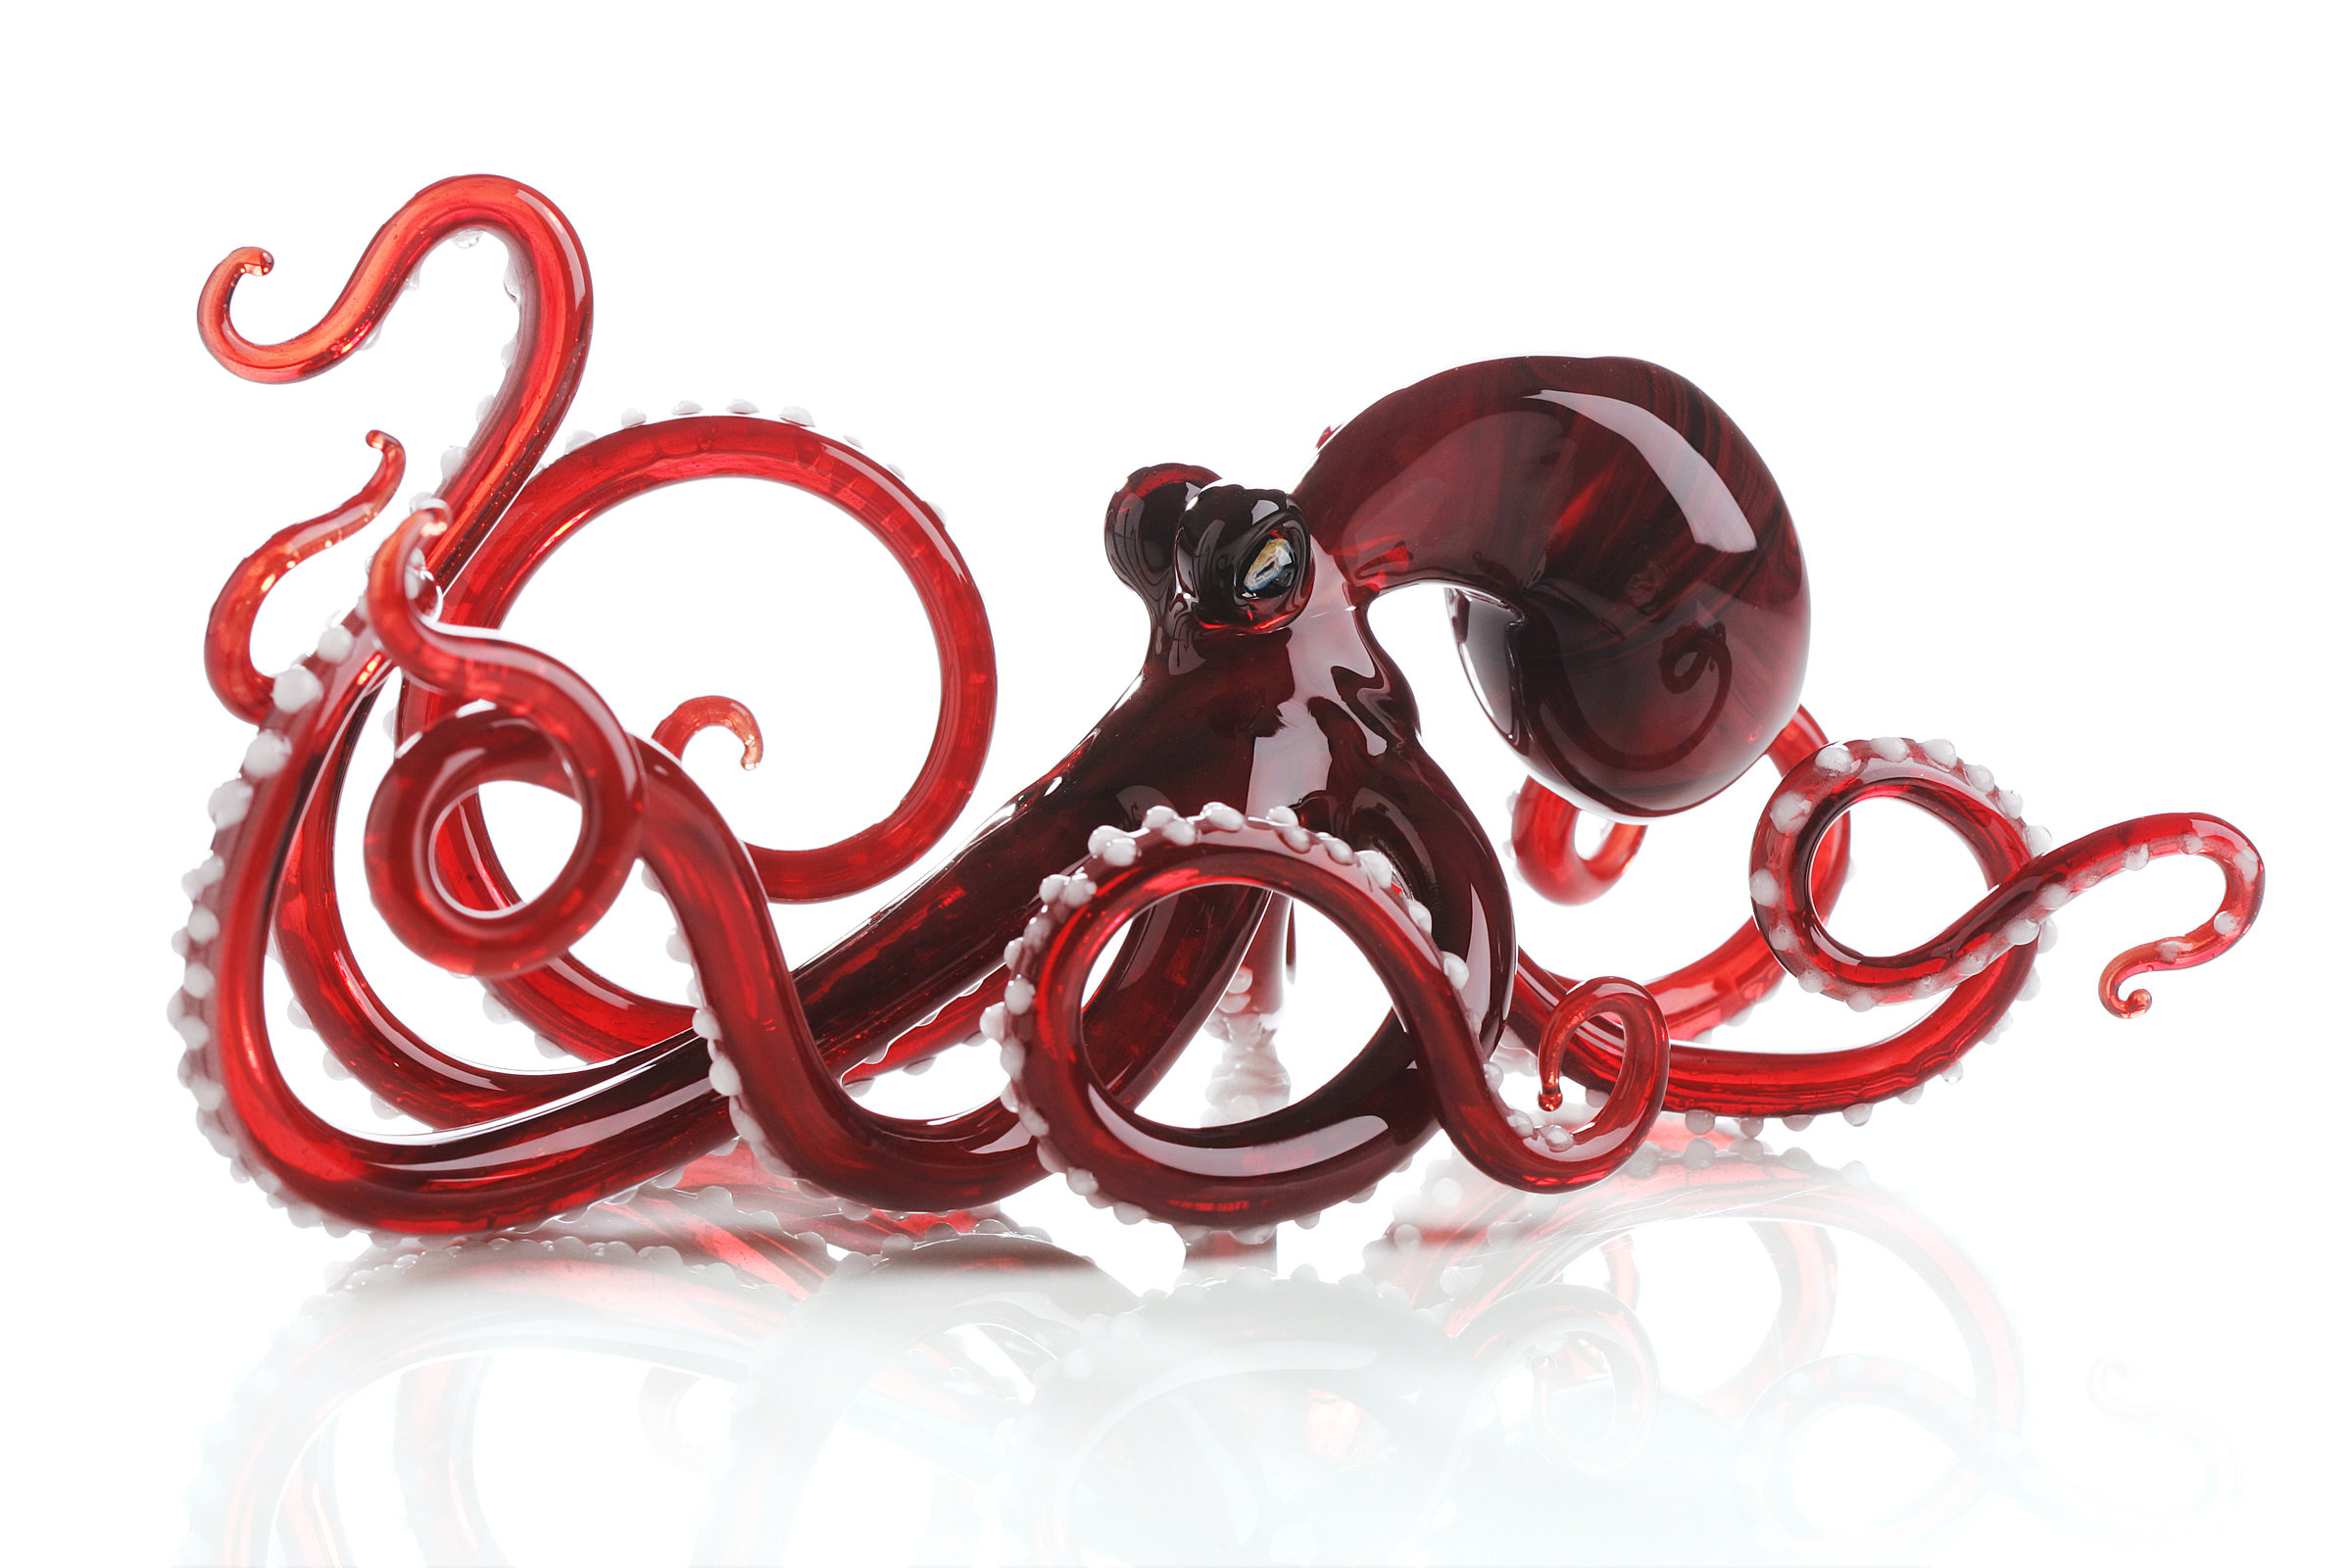 Octopus Glasses Octopus In Red By Jennifer Caldwell And Jason Chakravarty